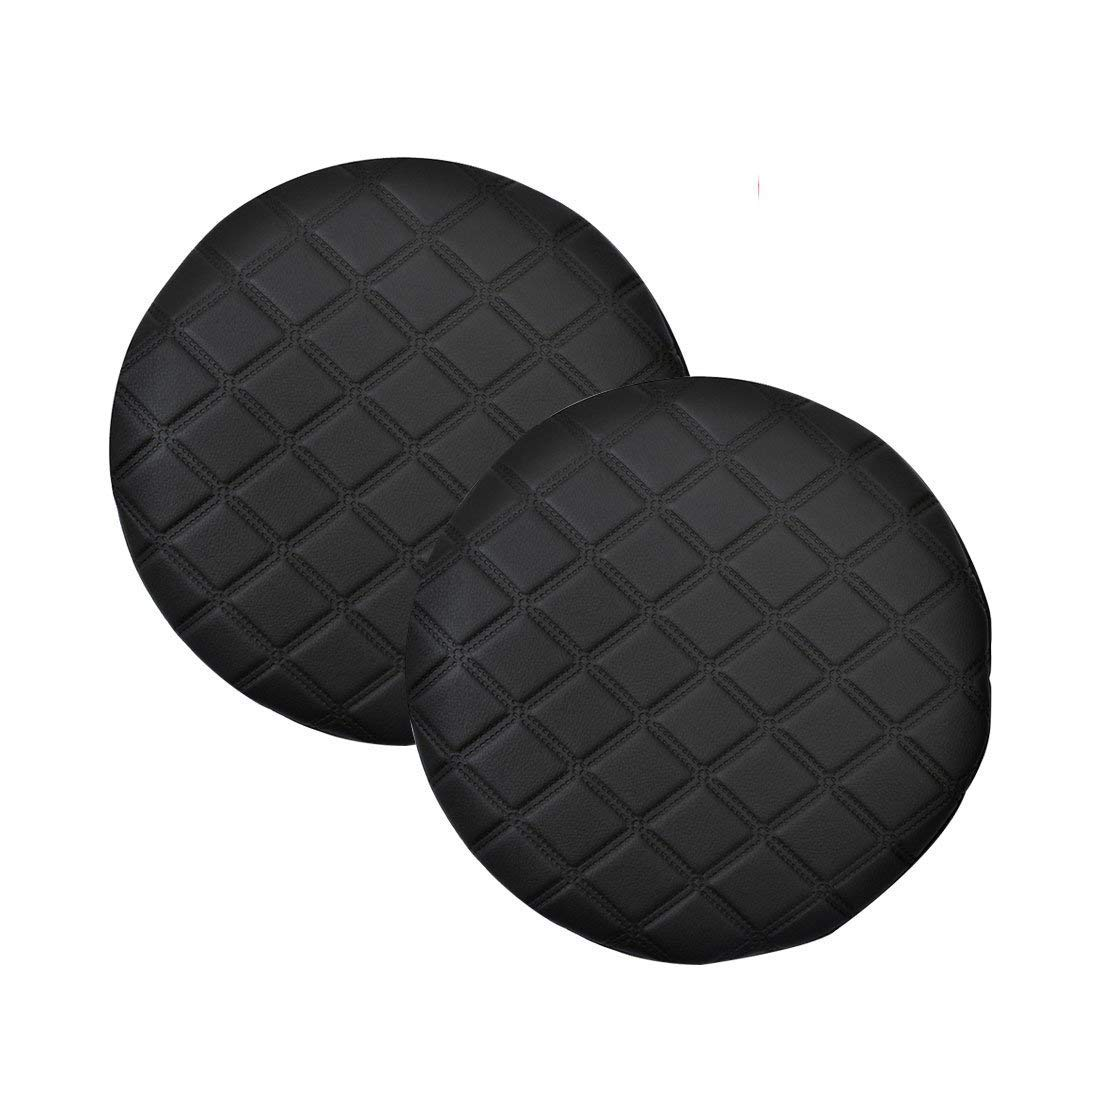 Pinji 2PCS Stool Cover Faux Leather Round Bar Cover Seat Cushion Proctector Dia 11.8inch/30cm